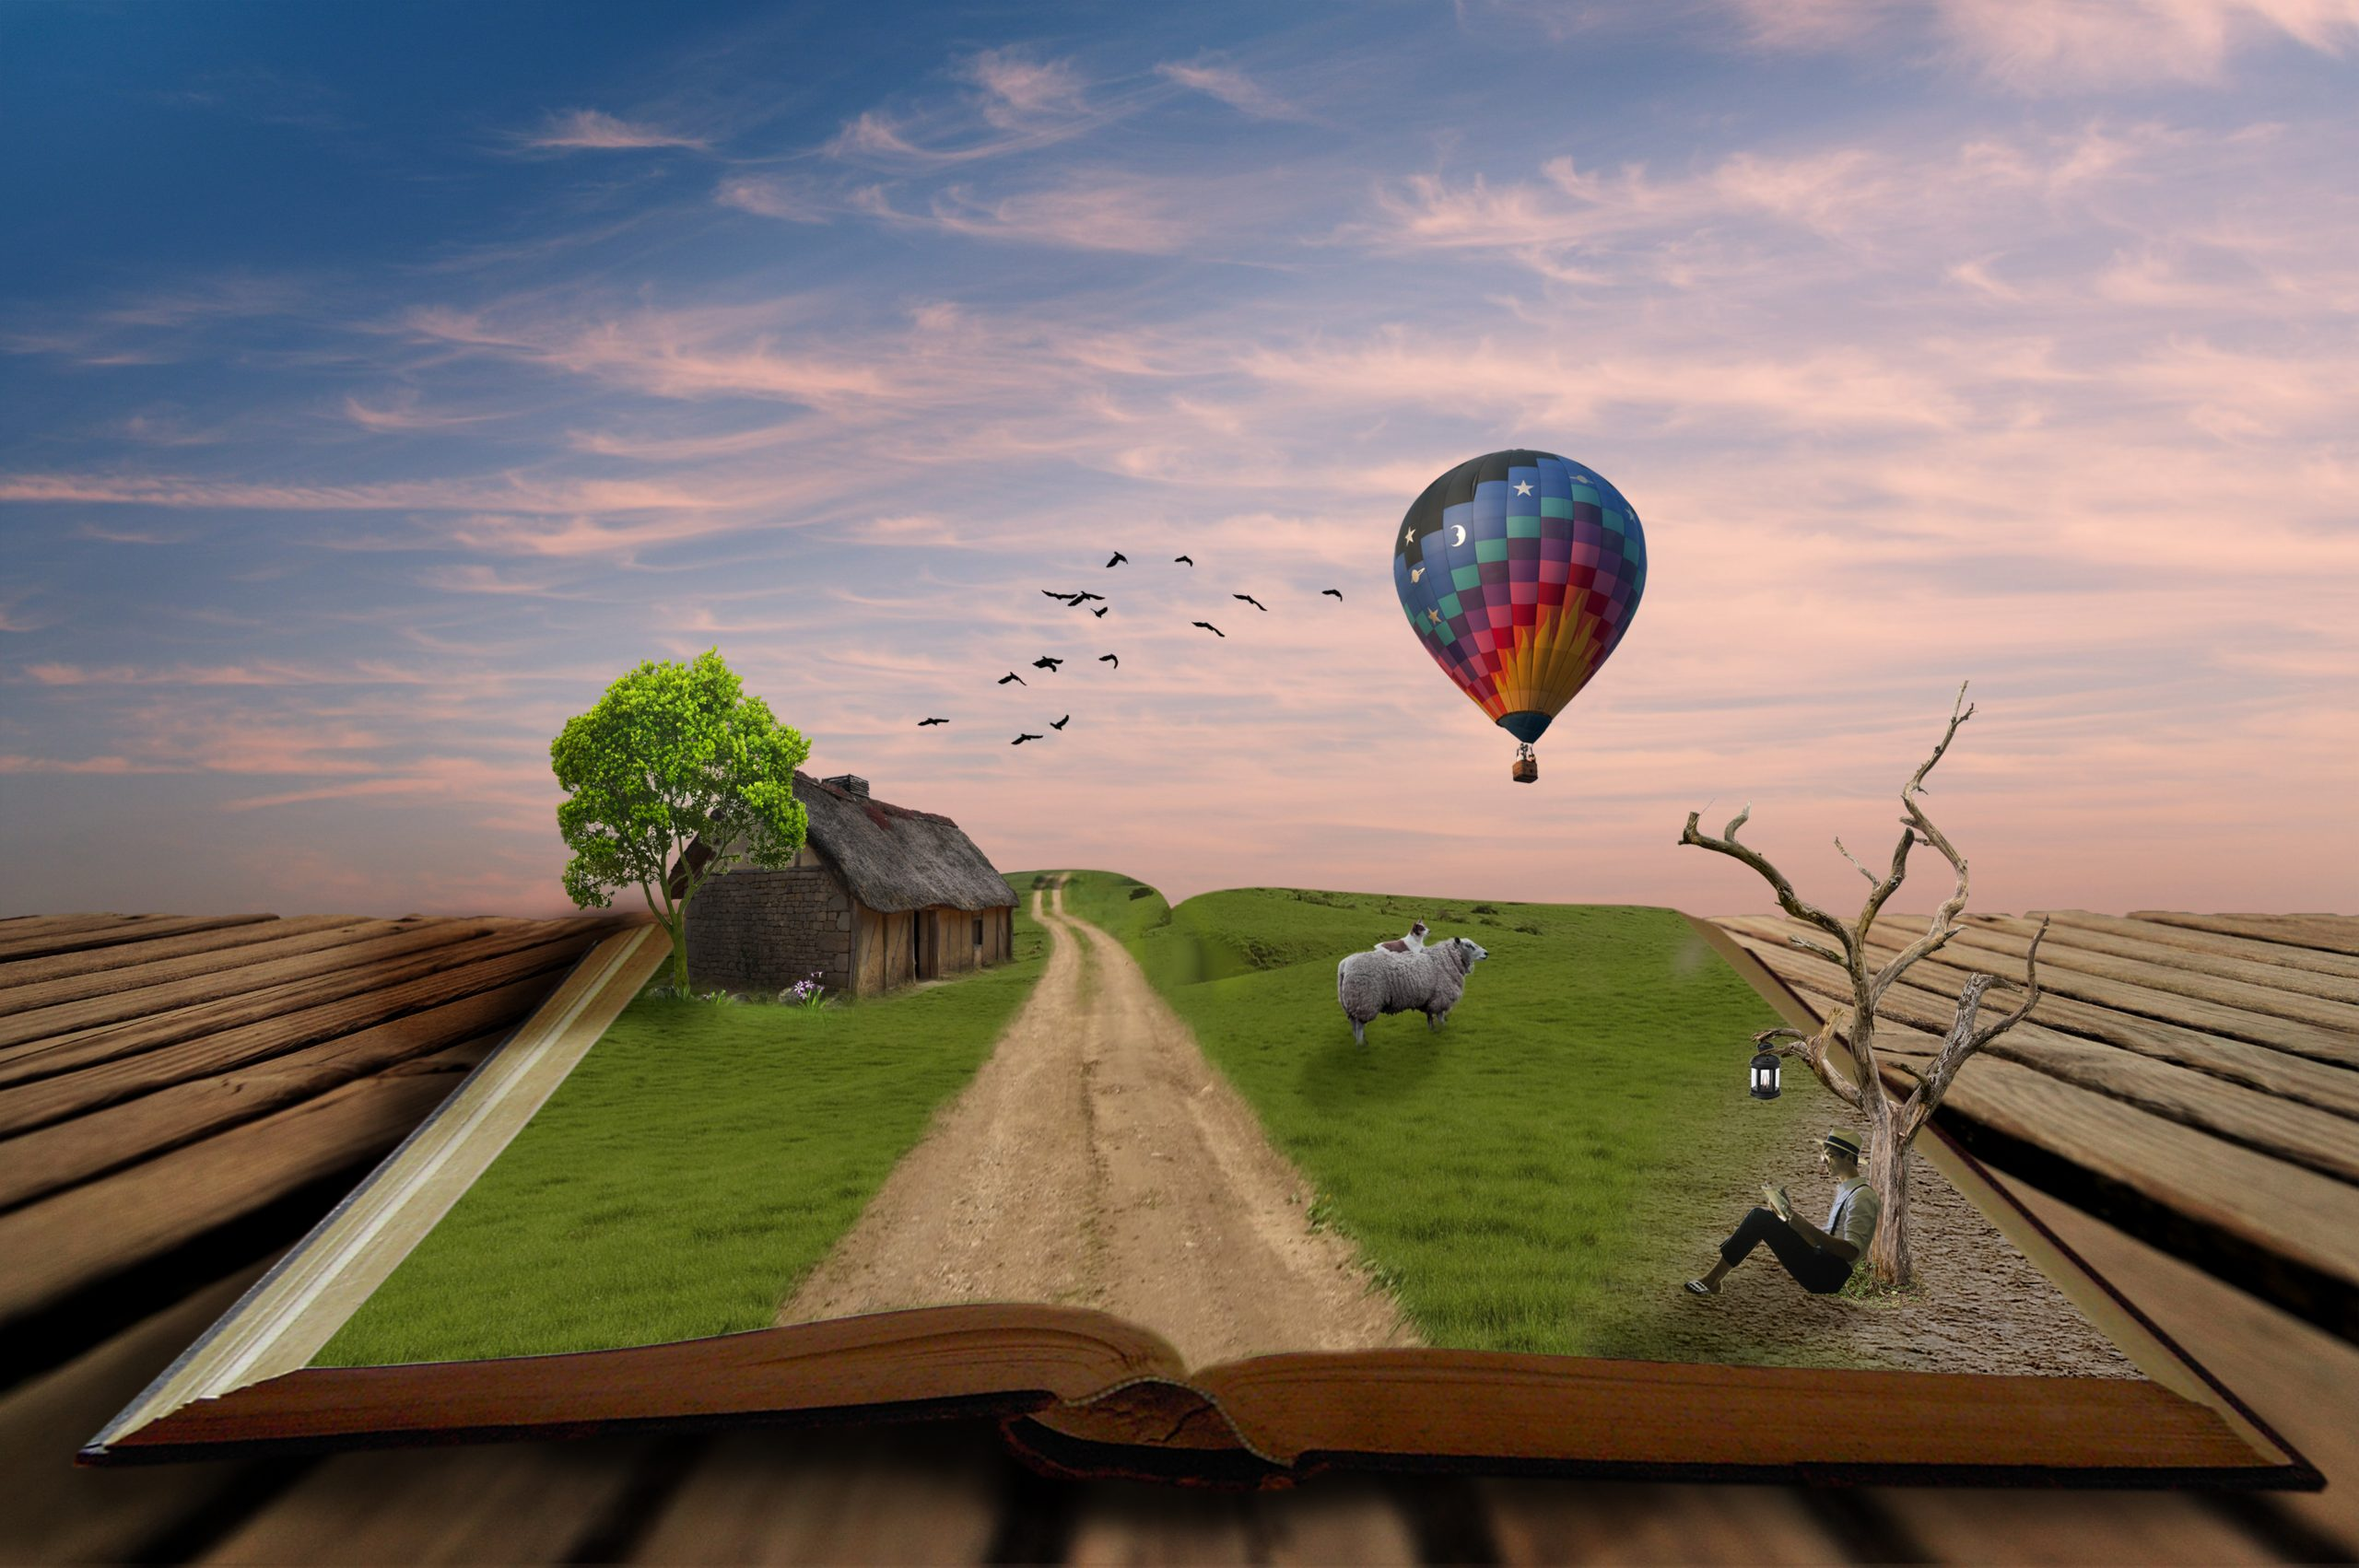 Idyllic scenery on pages of open magical book